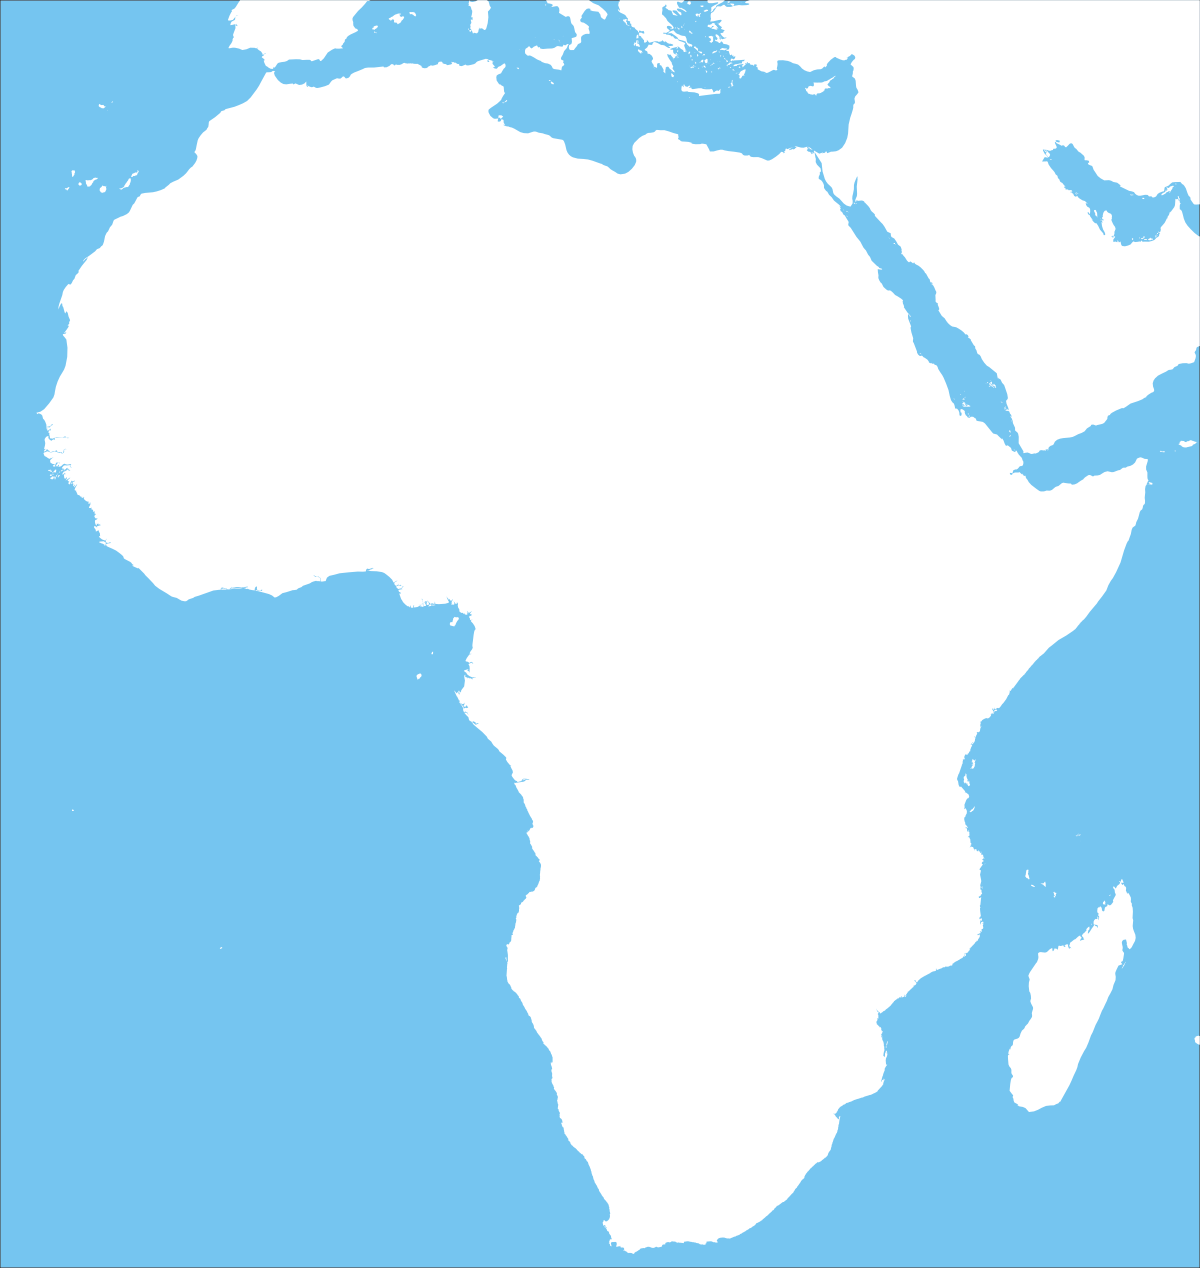 Blank Africa Outline Map